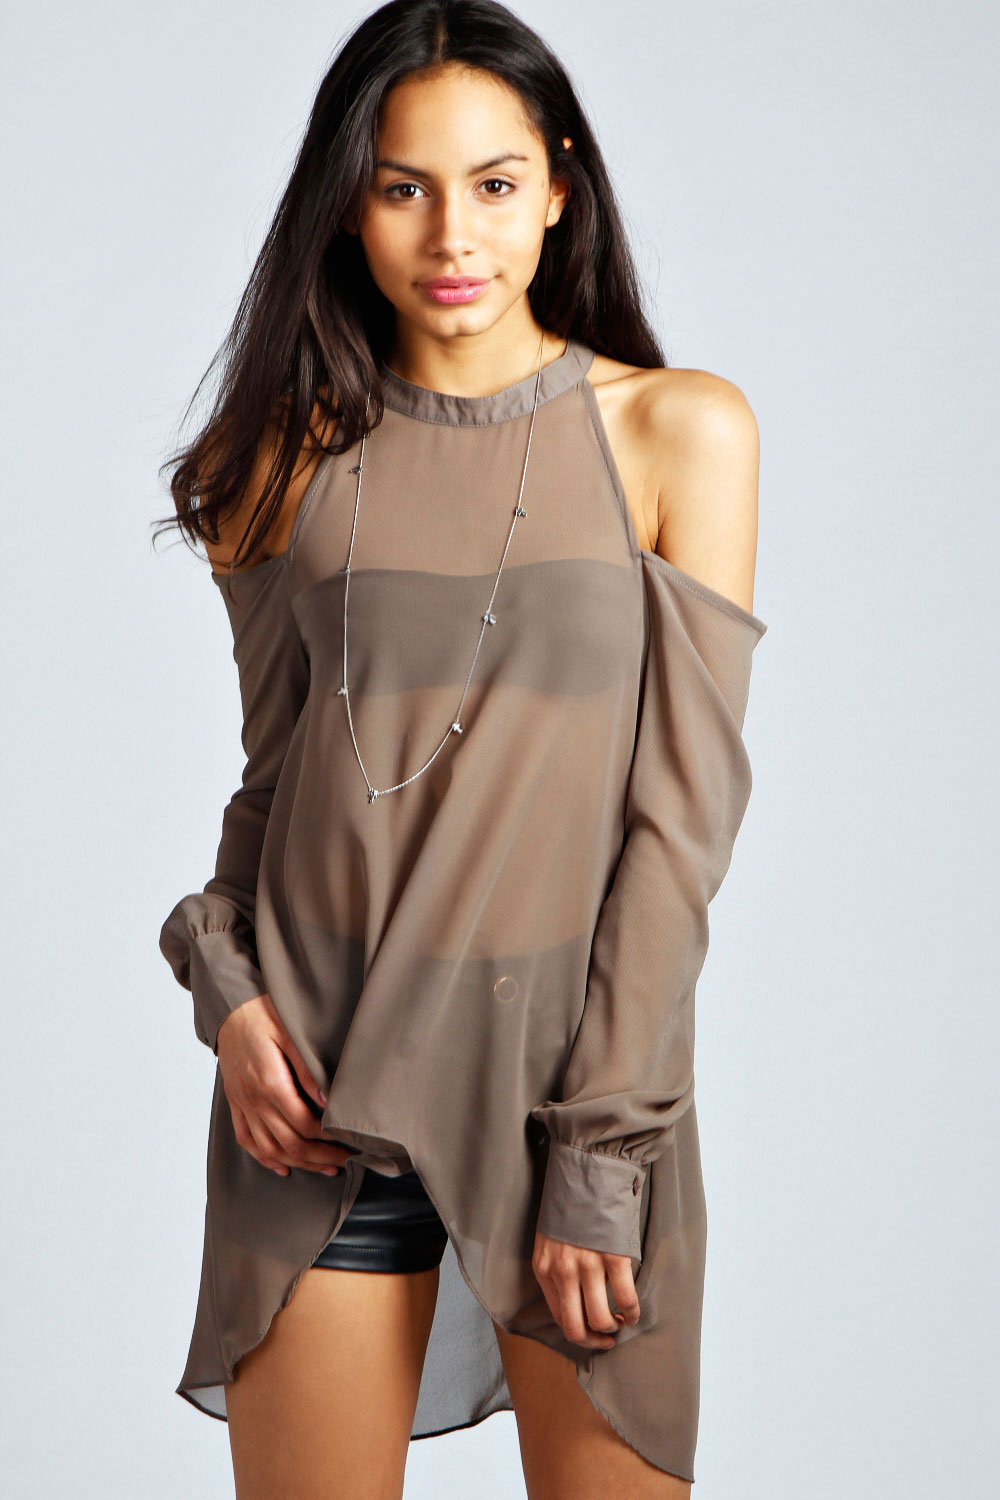 boohoo Isabella High Neck Cut Out Blouse - grey product image